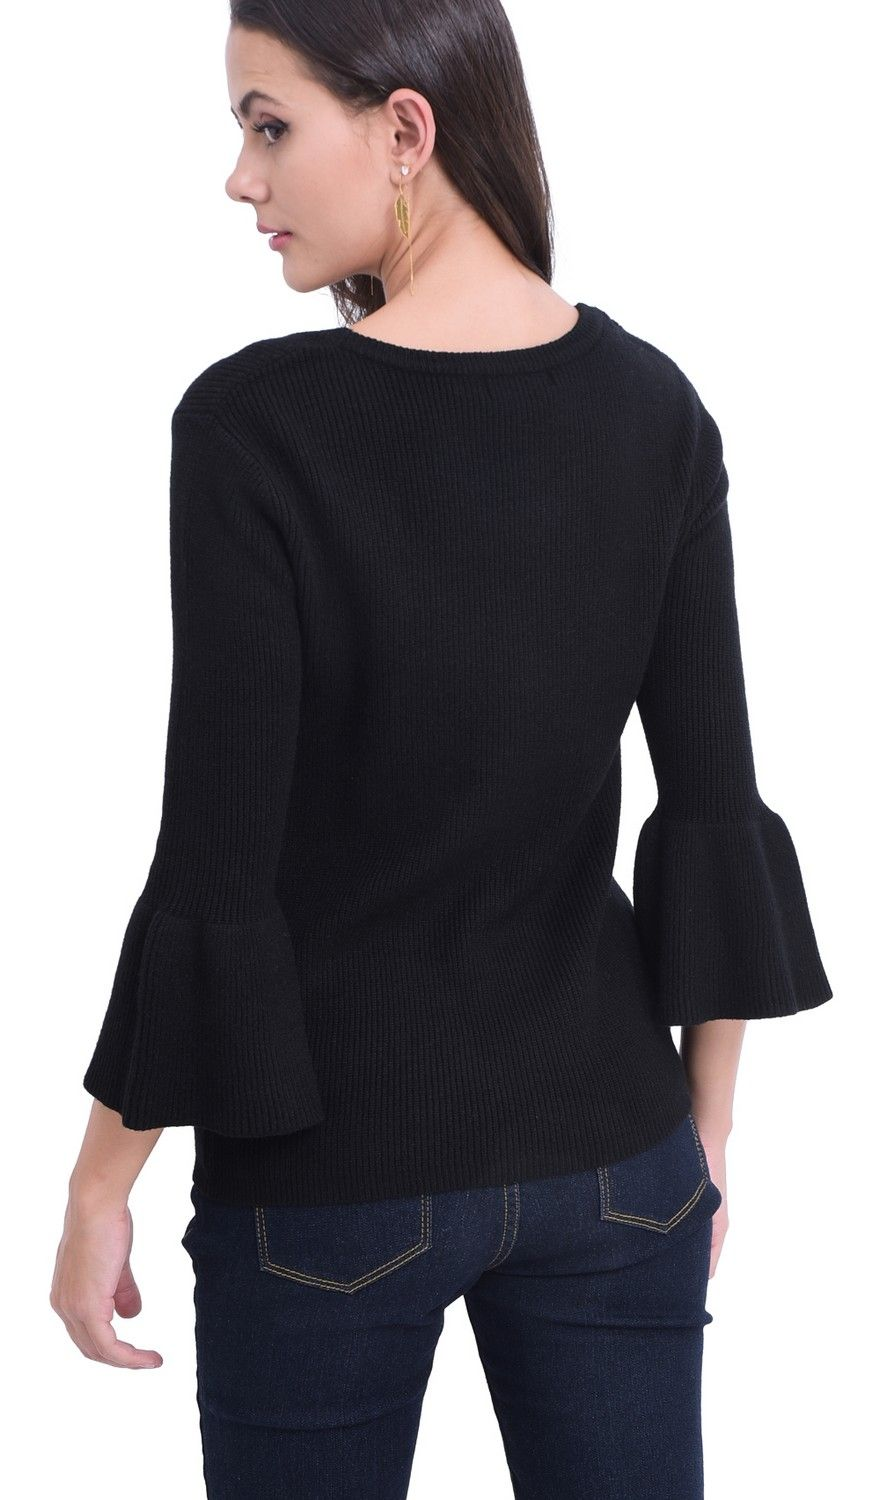 William De Faye Round Neck Sweater with Babydoll Sleeves in Black